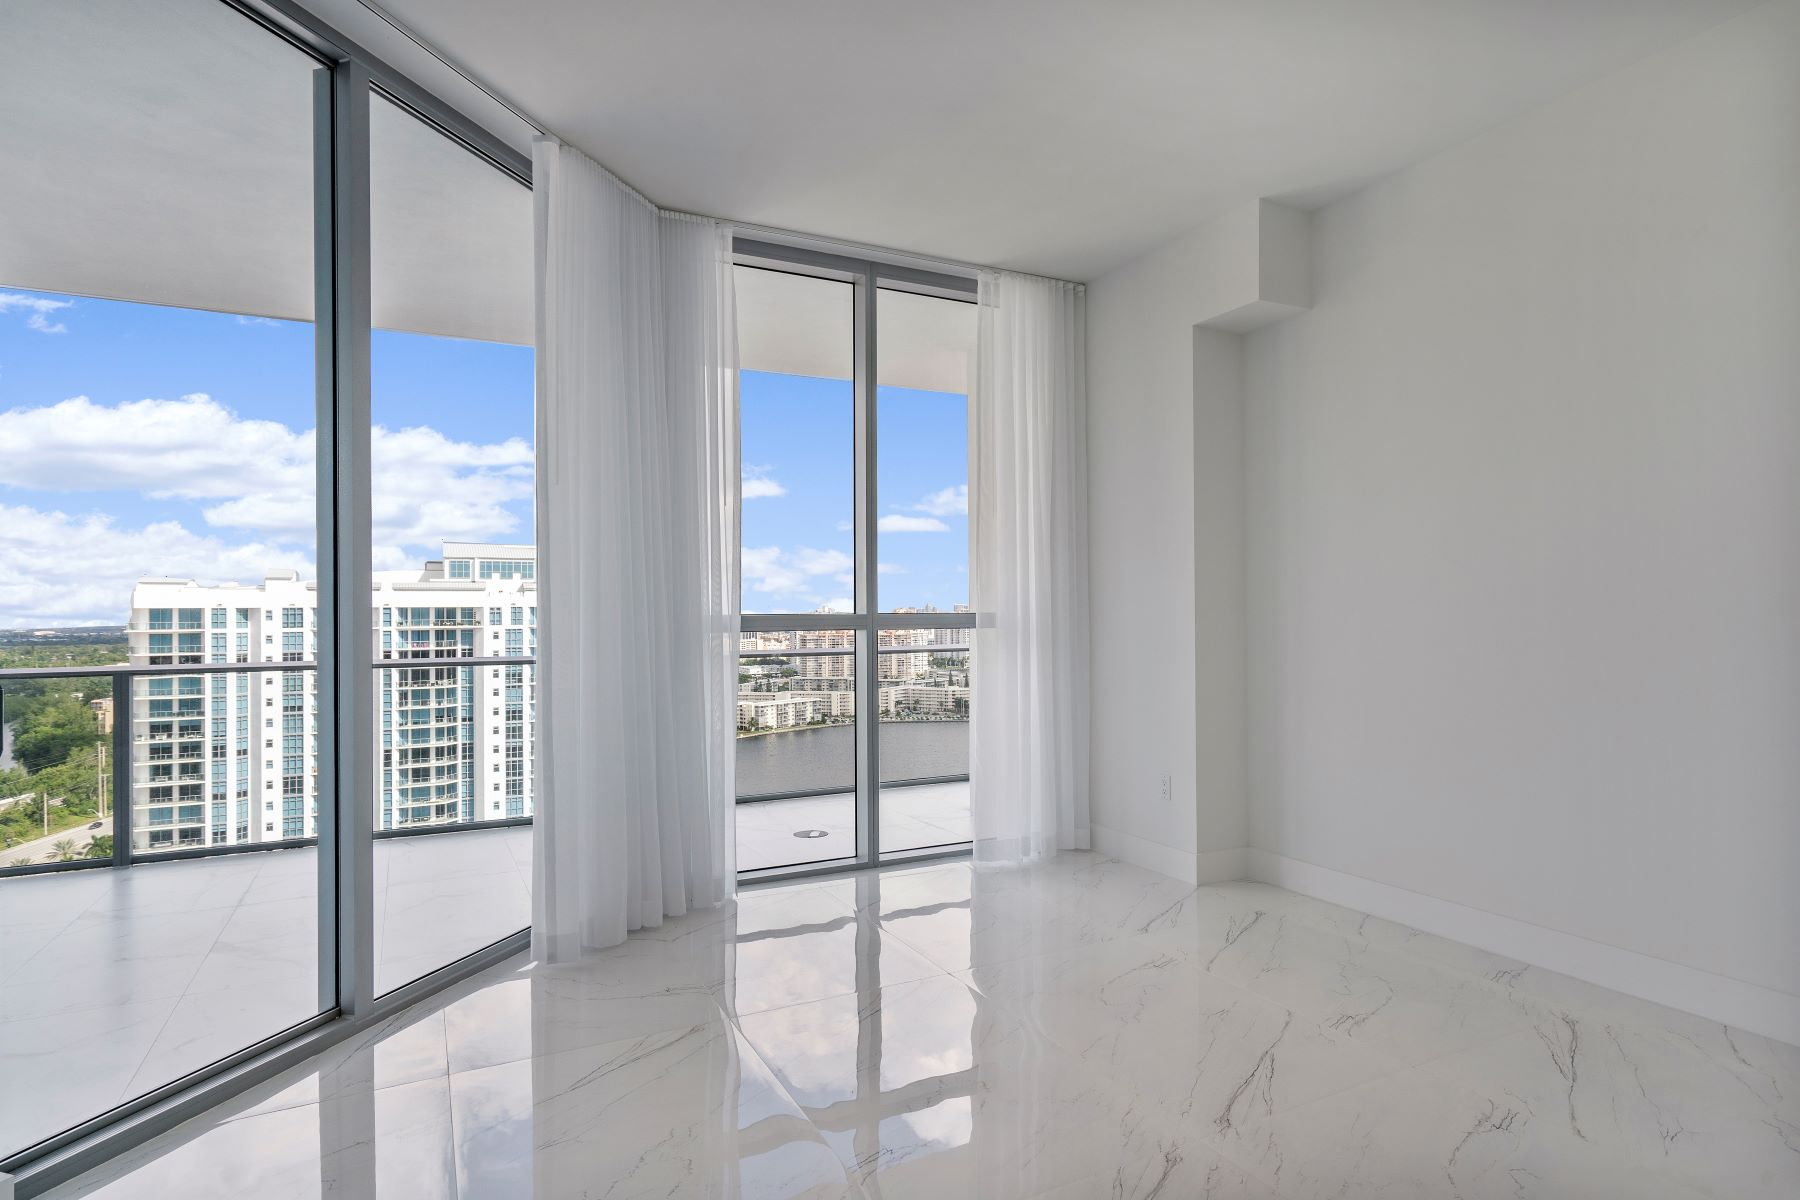 Condominiums for Sale at 17111 Biscayne Blvd PH5 North Miami Beach, Florida 33160 United States